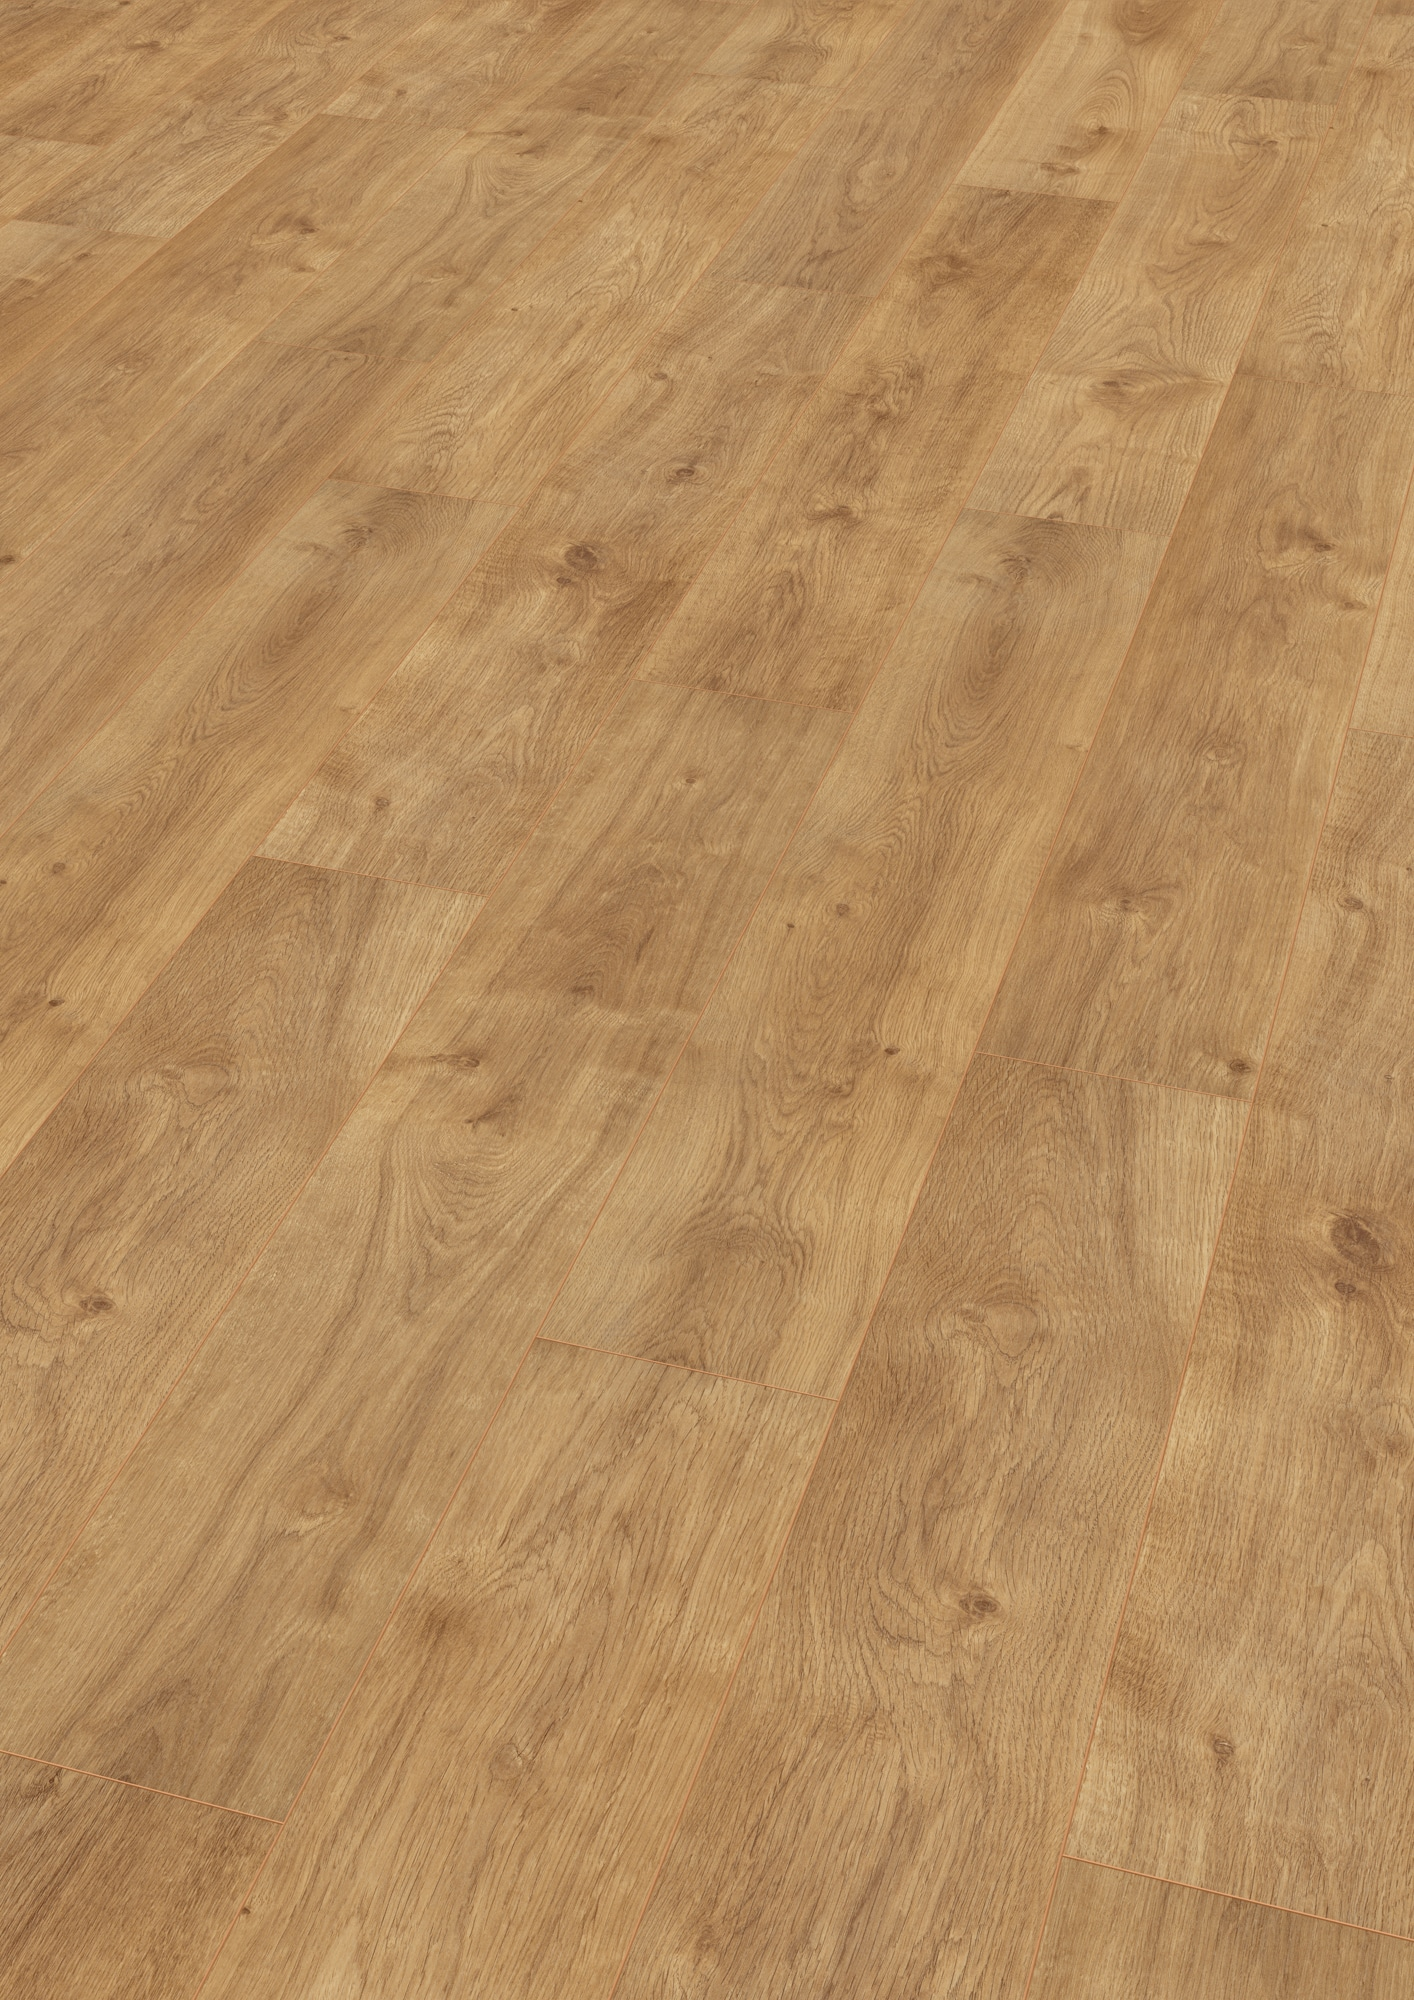 Finfloor original roble retro club del parquet for Suelos de roble